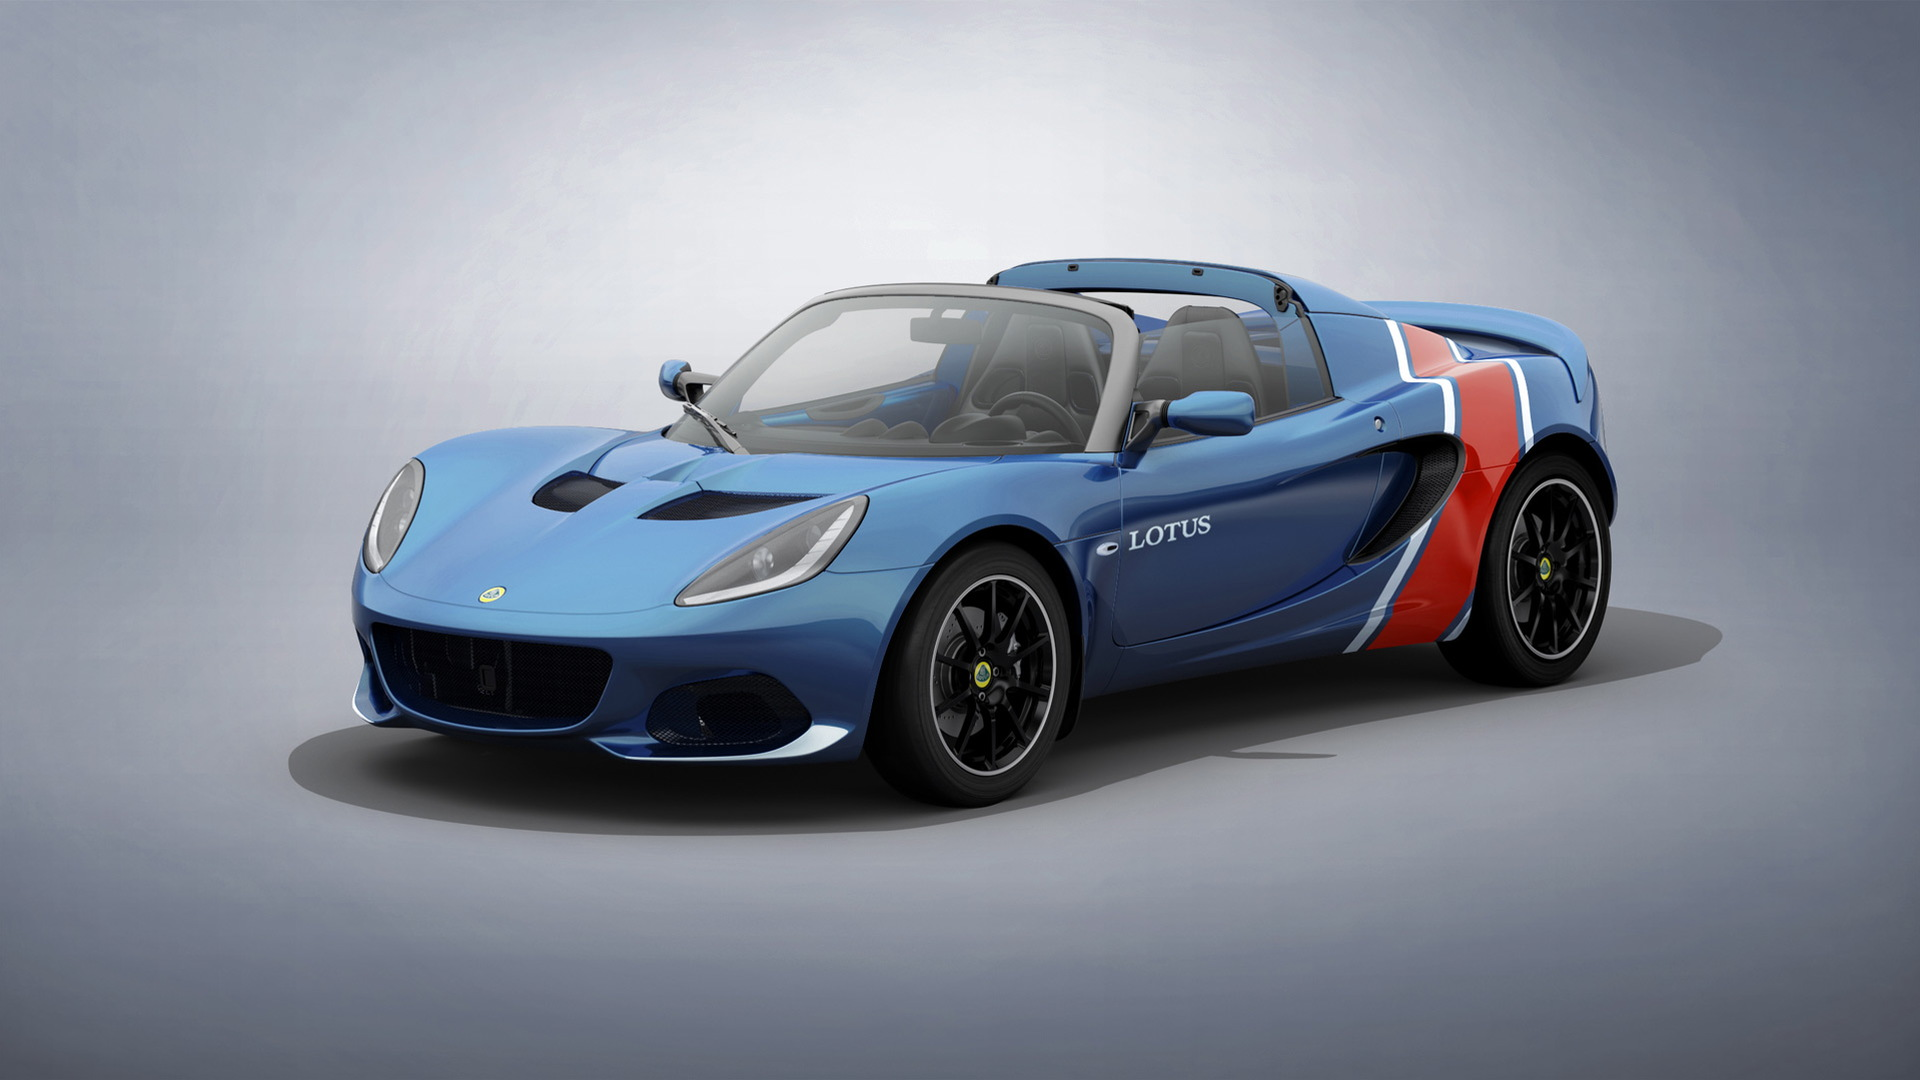 Lotus celebrates motorsport heritage with retro liveries for Elise